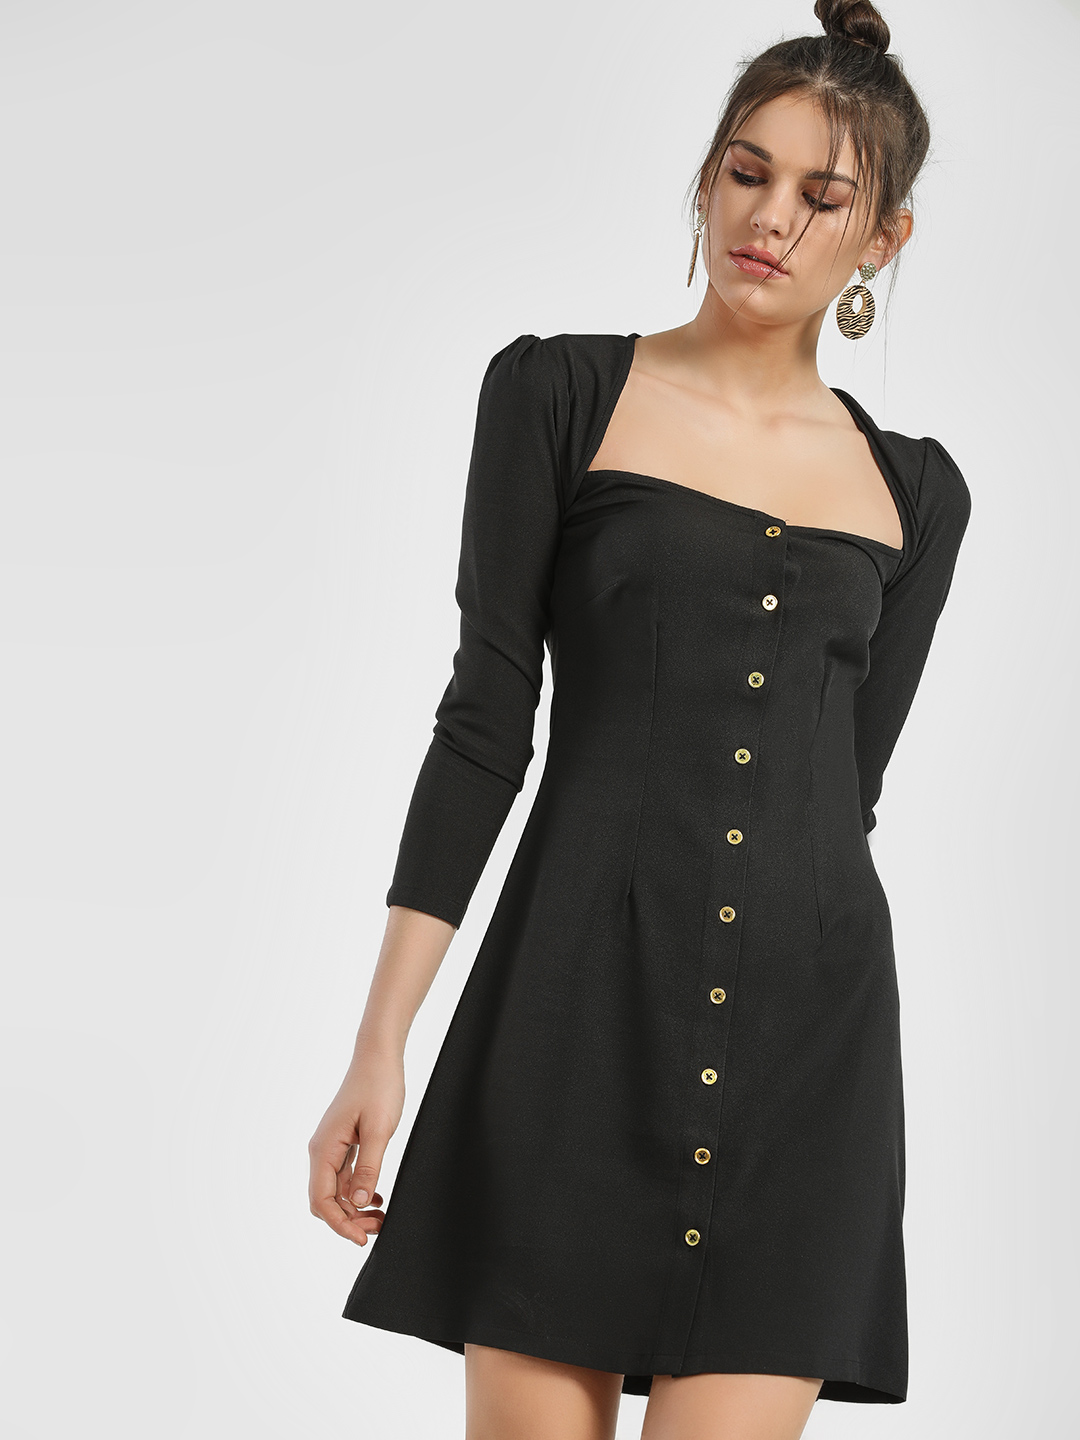 Ri-Dress Black RI DRESS Back Cut Out Shift Dress 1